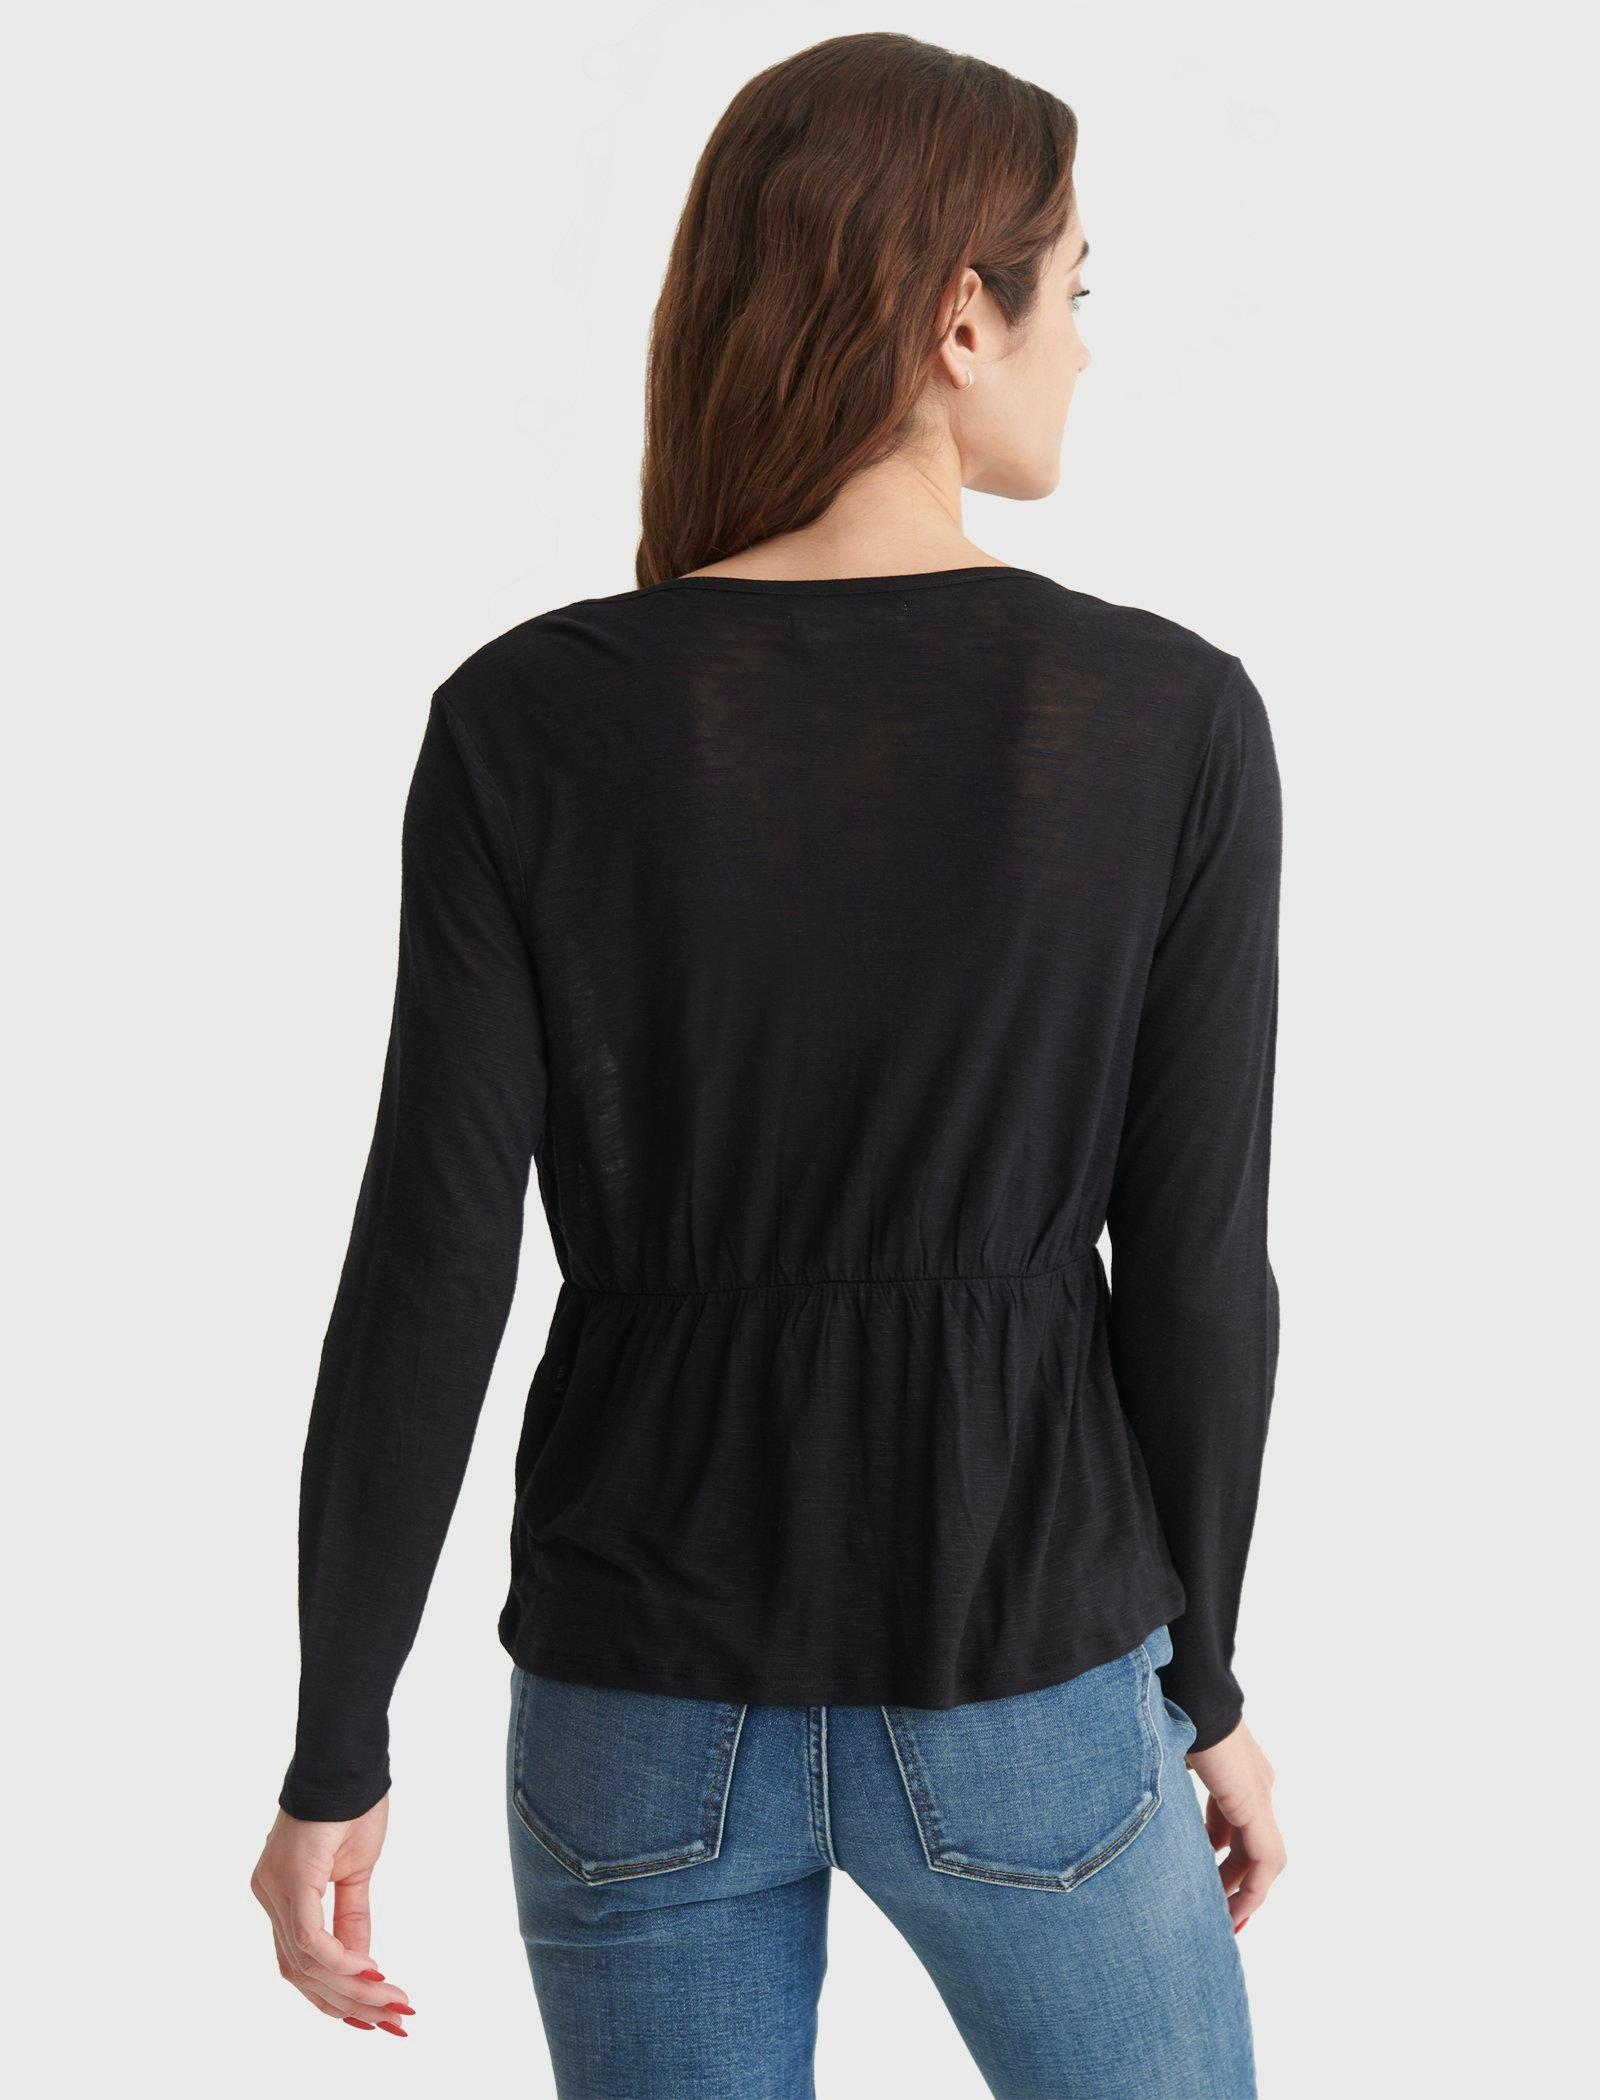 RELAXED-FIT PEPLUM V-NECK TOP, image 5